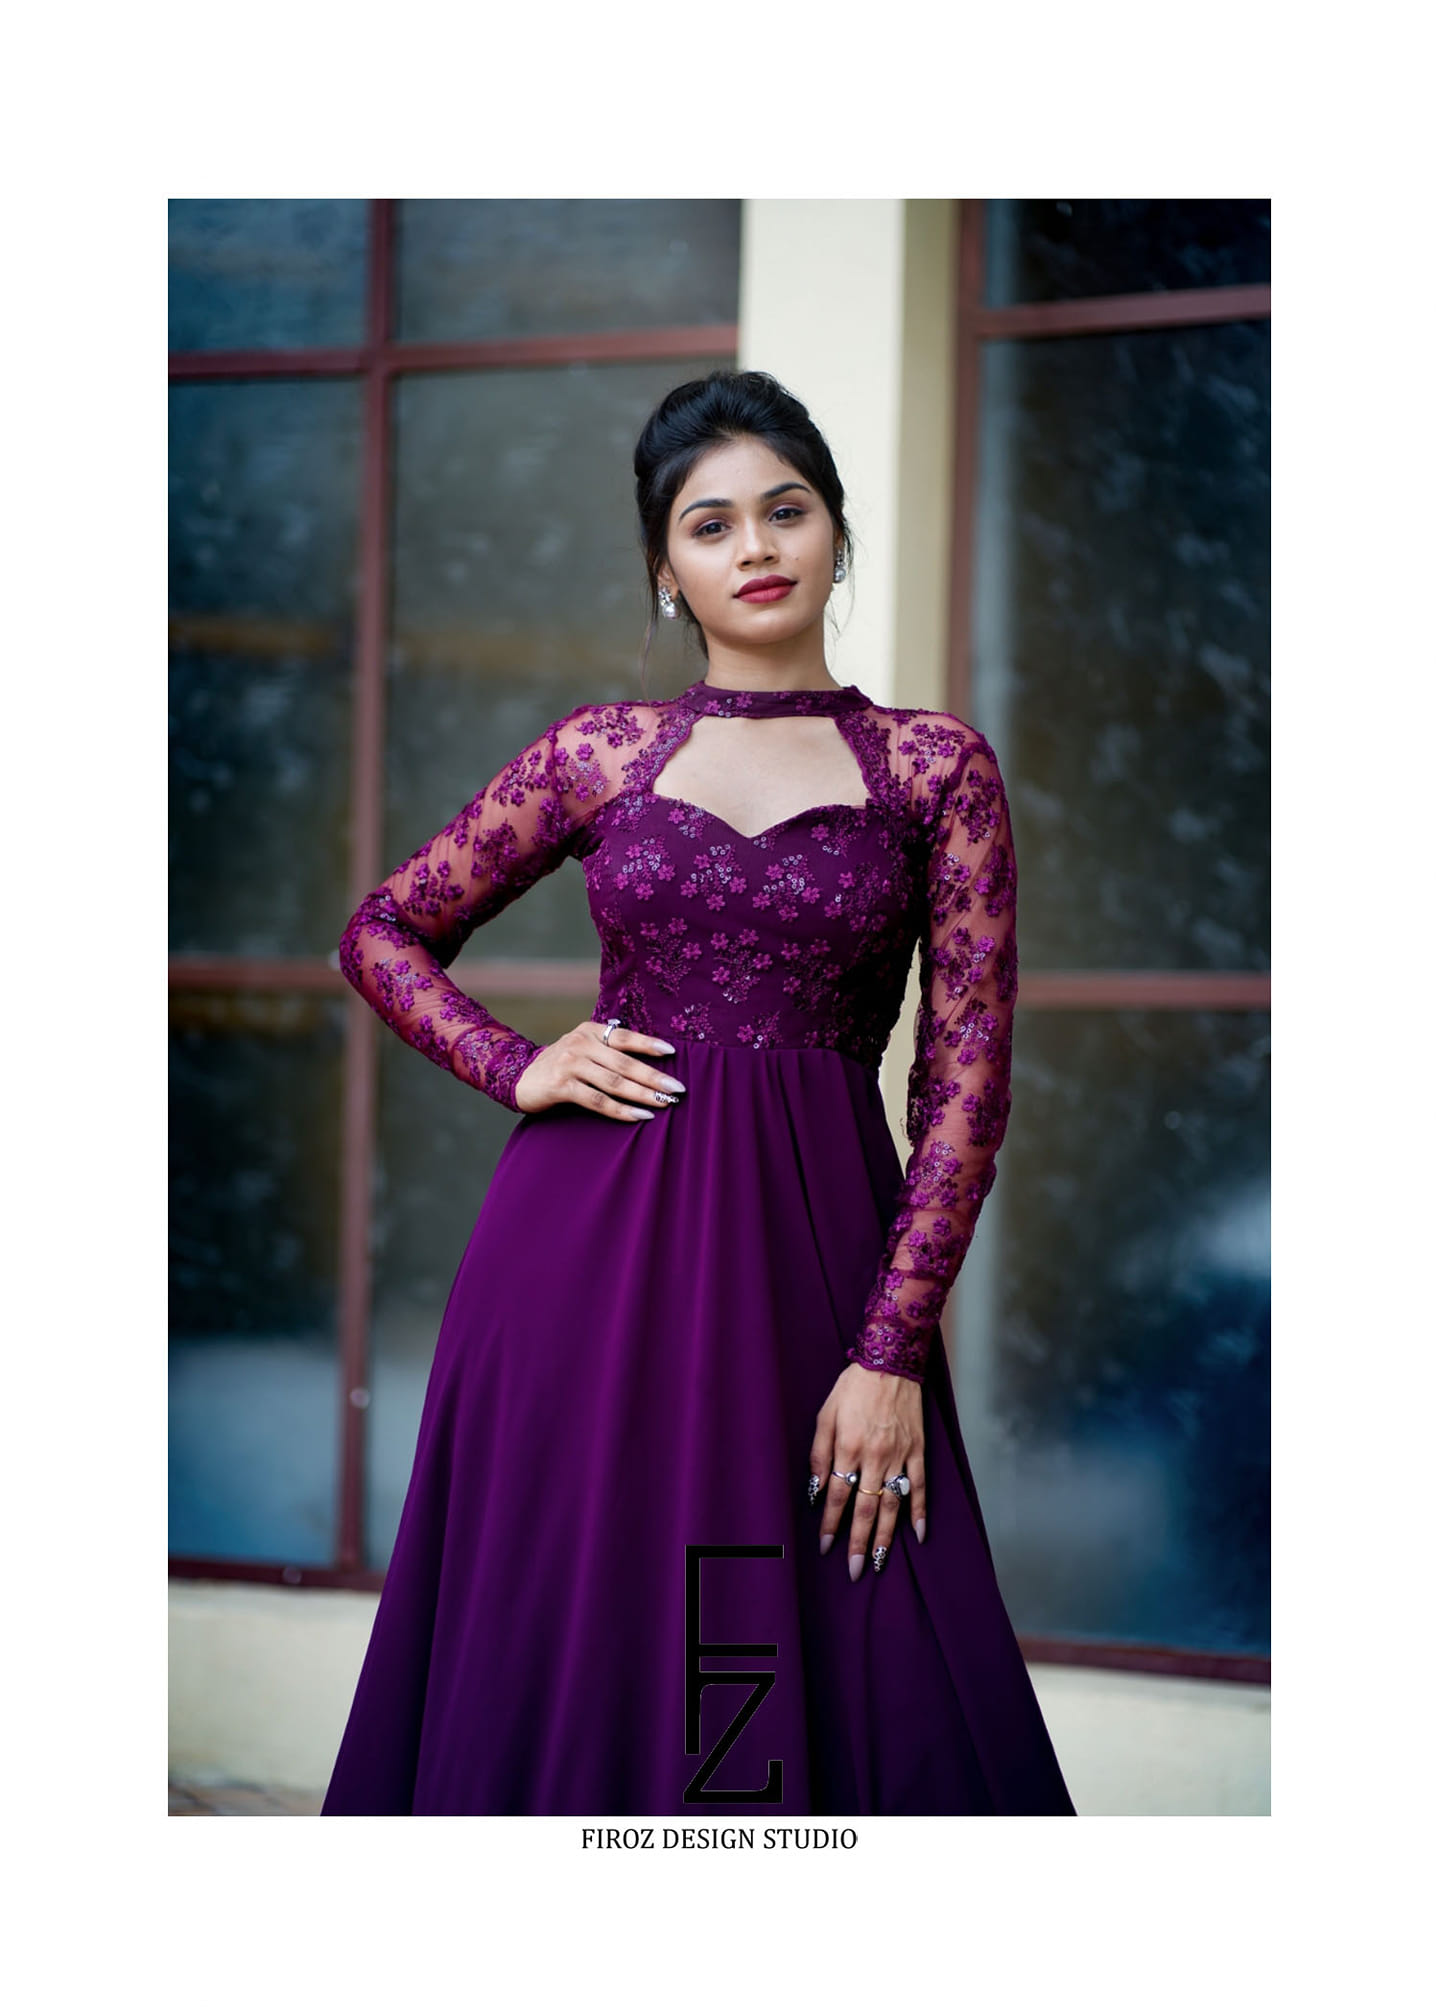 Beautiful Bhanu in firoz design studio purple long gown outfit.  They can customise the colour and size as per your requirements  To contact  : 9505340228 / 9553480491/ 8142049755 2021-06-21